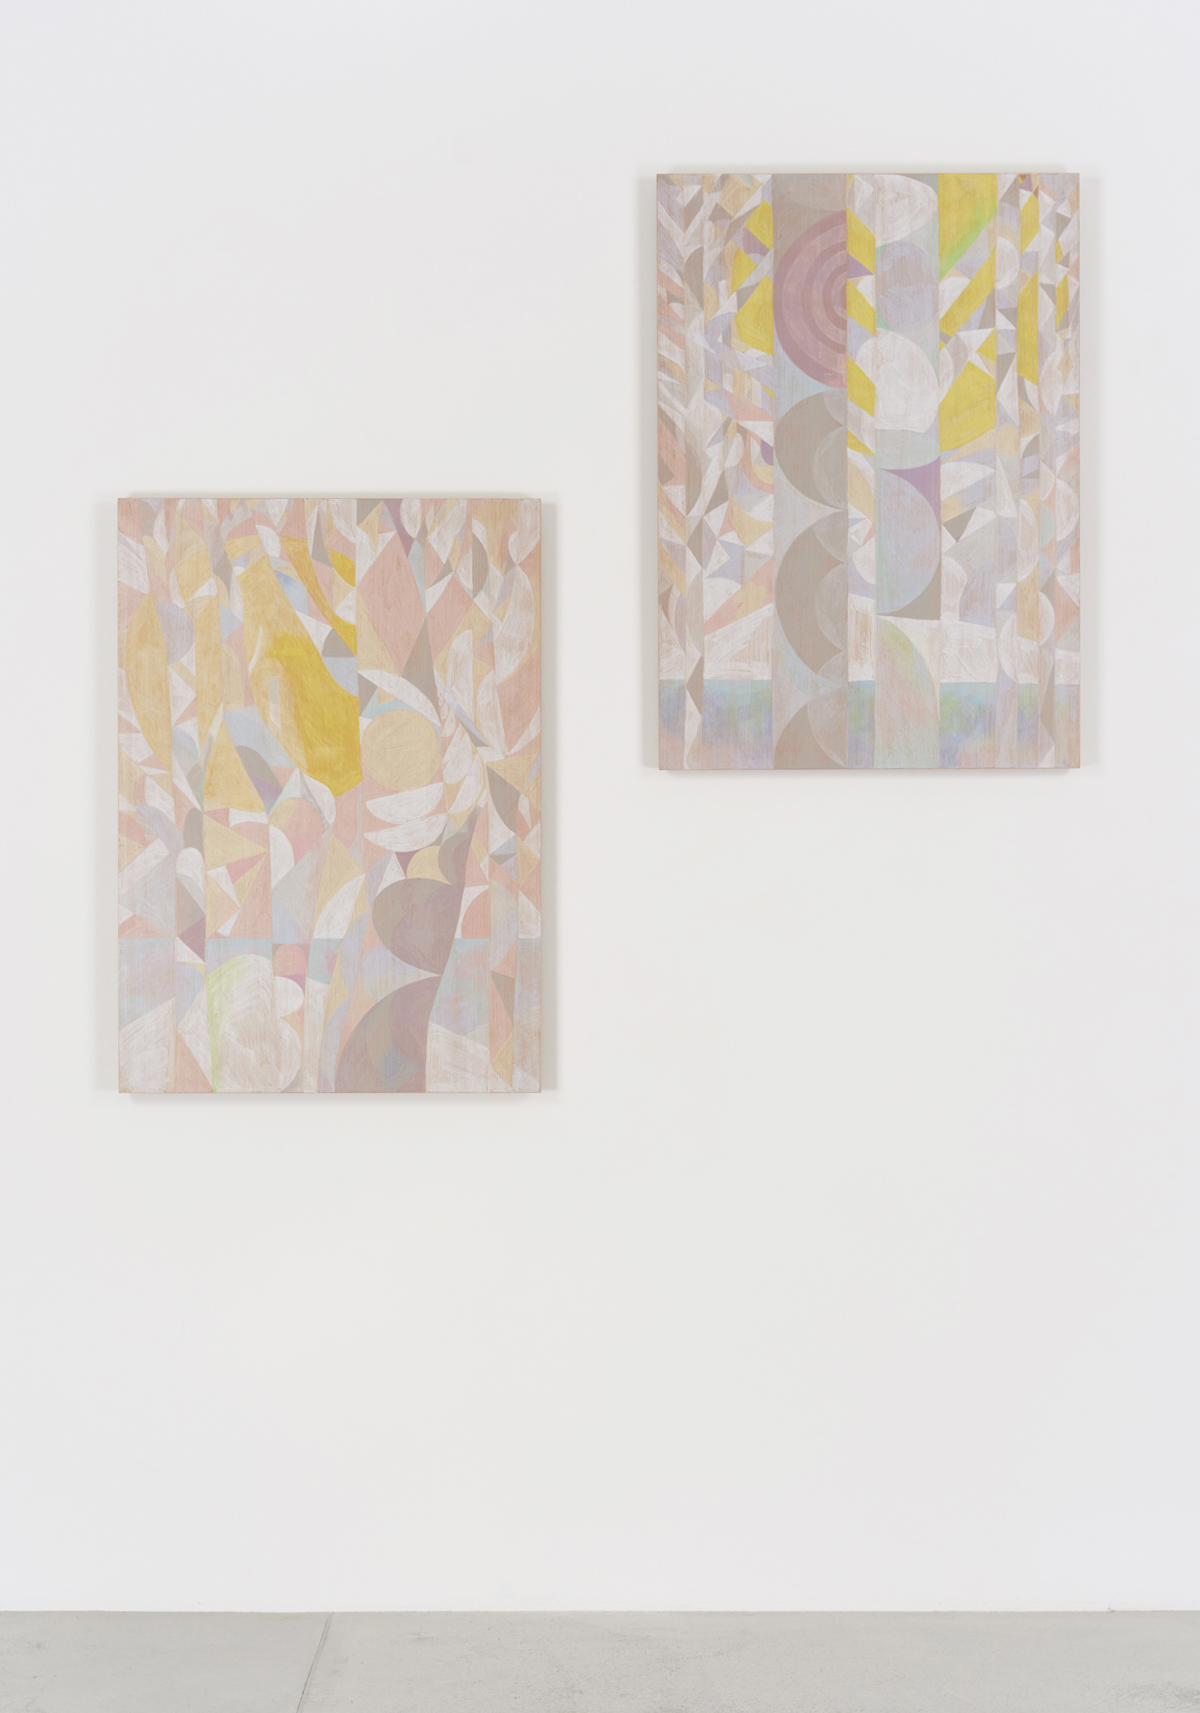 The Invisible Seascape (Hiroshima),   2017 (Right)    The Invisible Landscape (Hiroshima)  ,   2017 (Left)  88cm x 62.5cm  Colour pencils on wood  Installation View at Maho Kubota Gallery